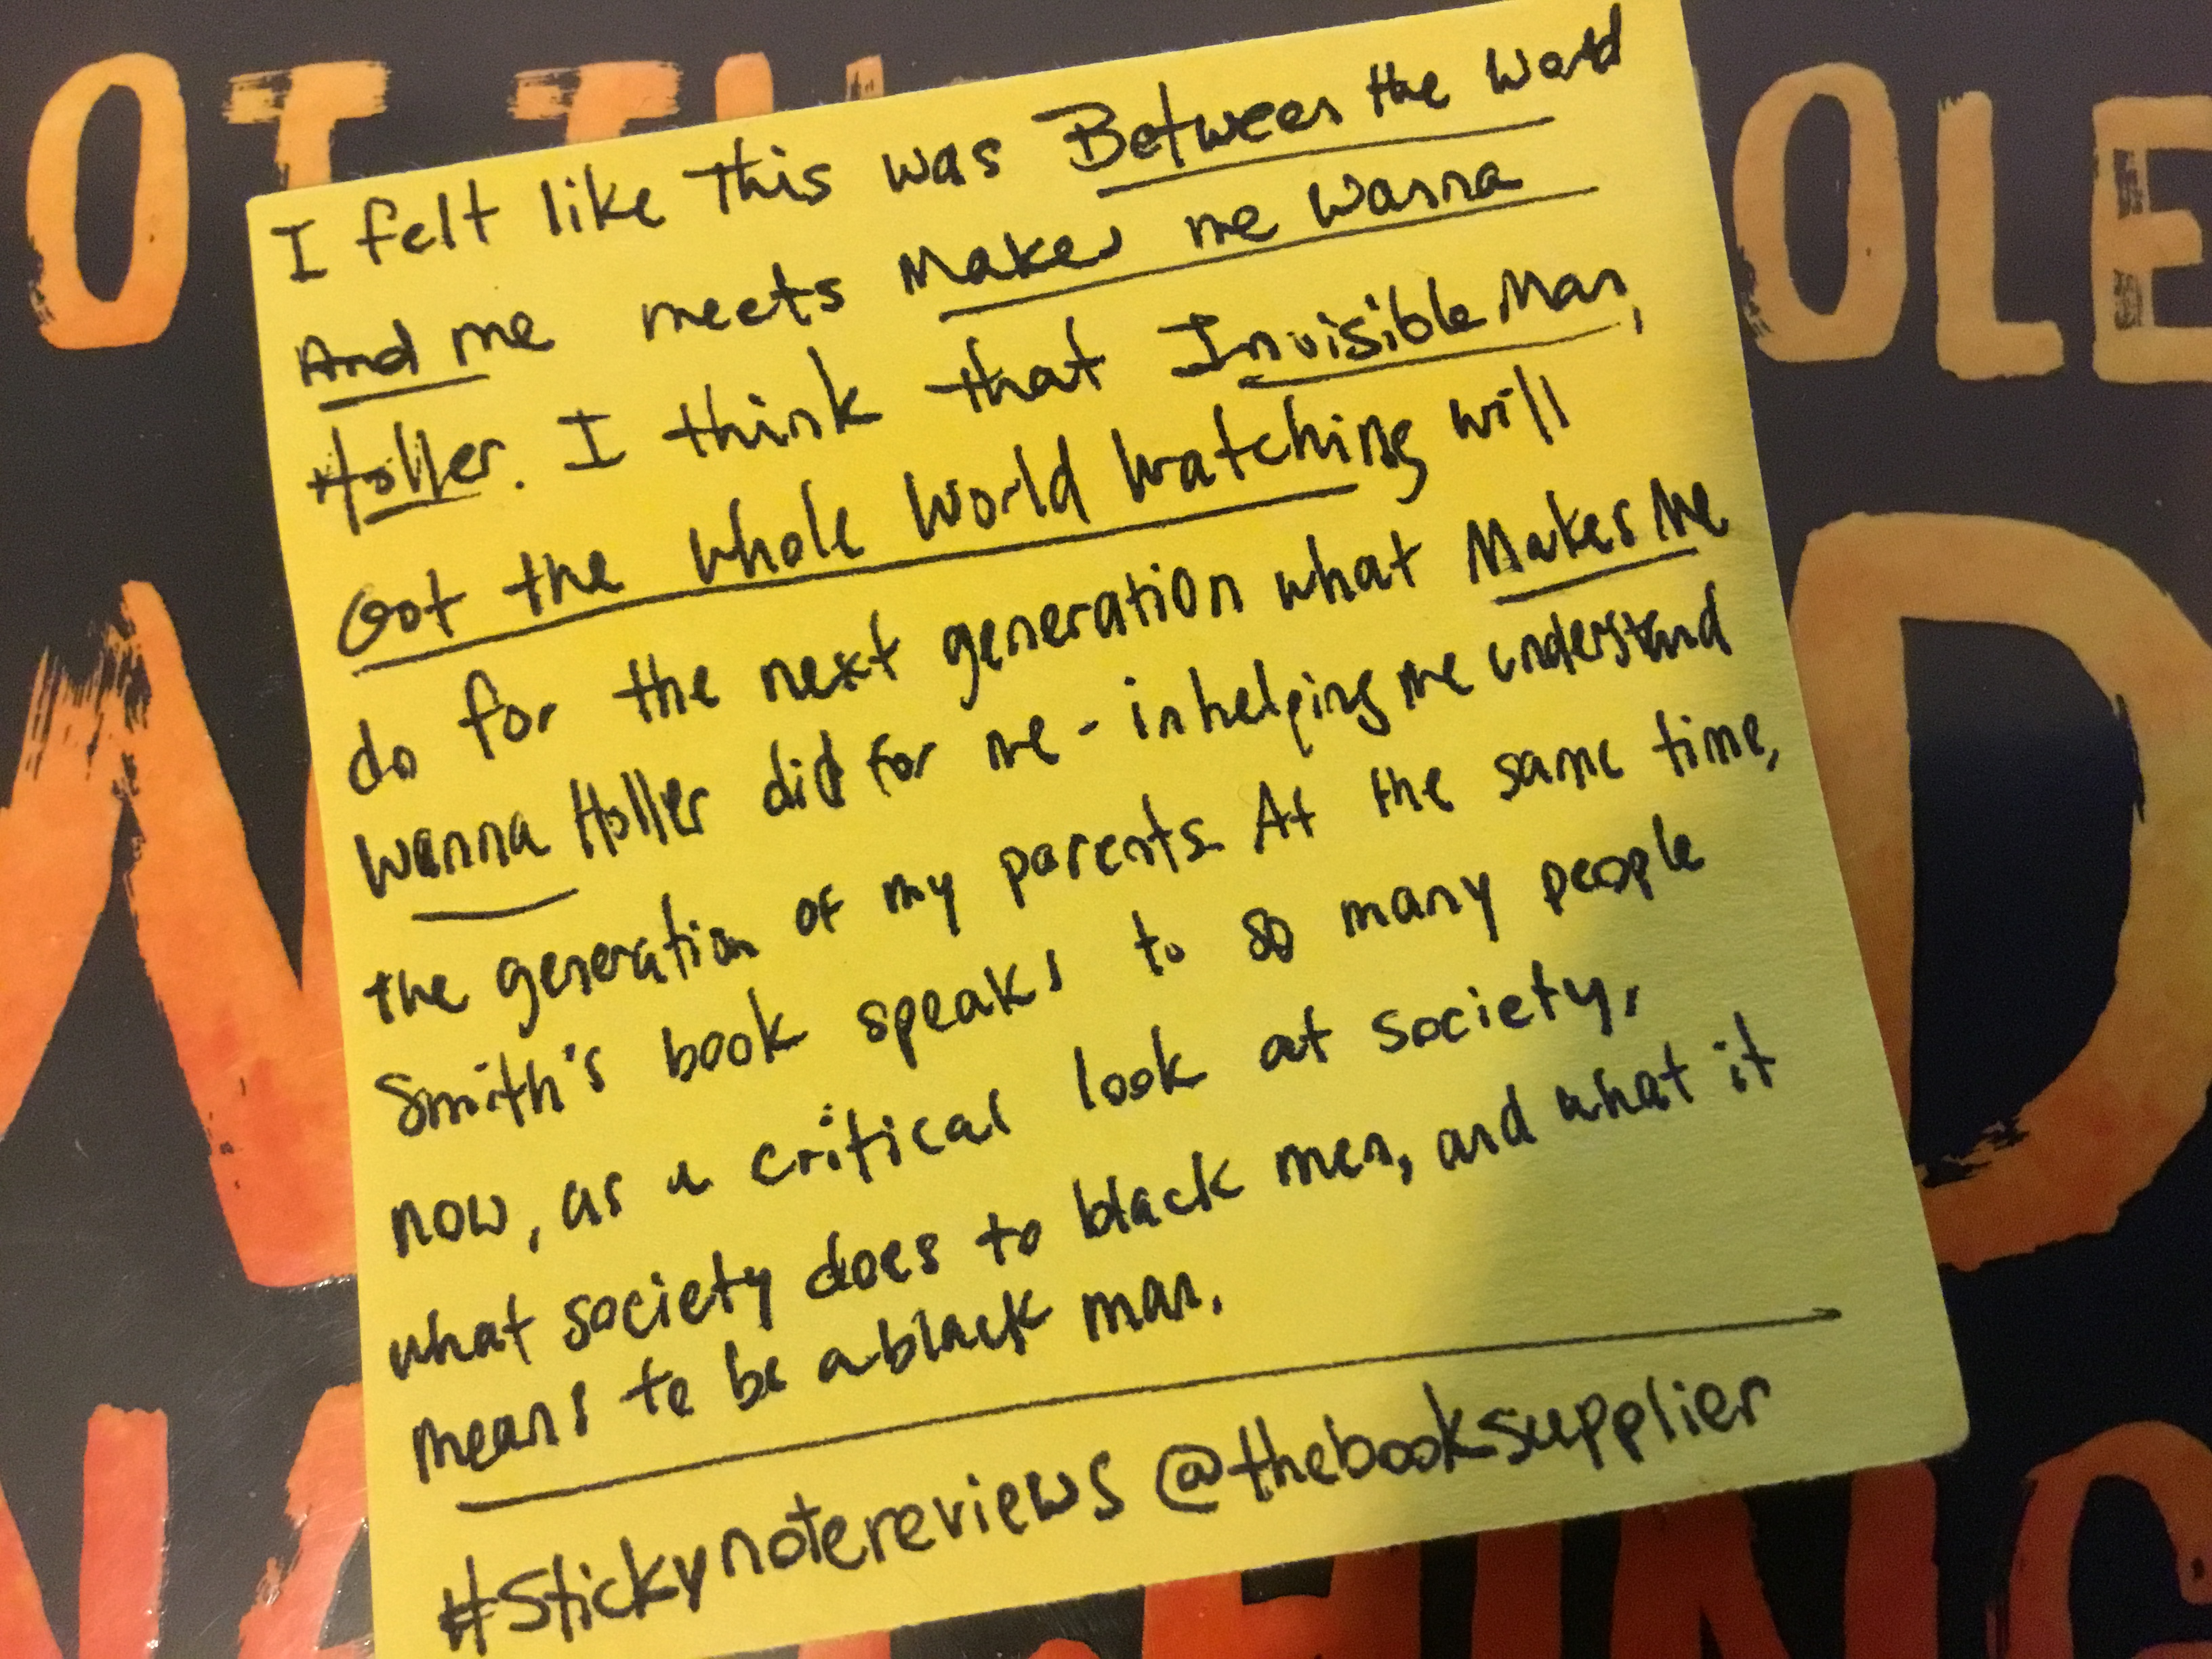 Sticky Note Review for Invisible Man, Got the Whole World Watching